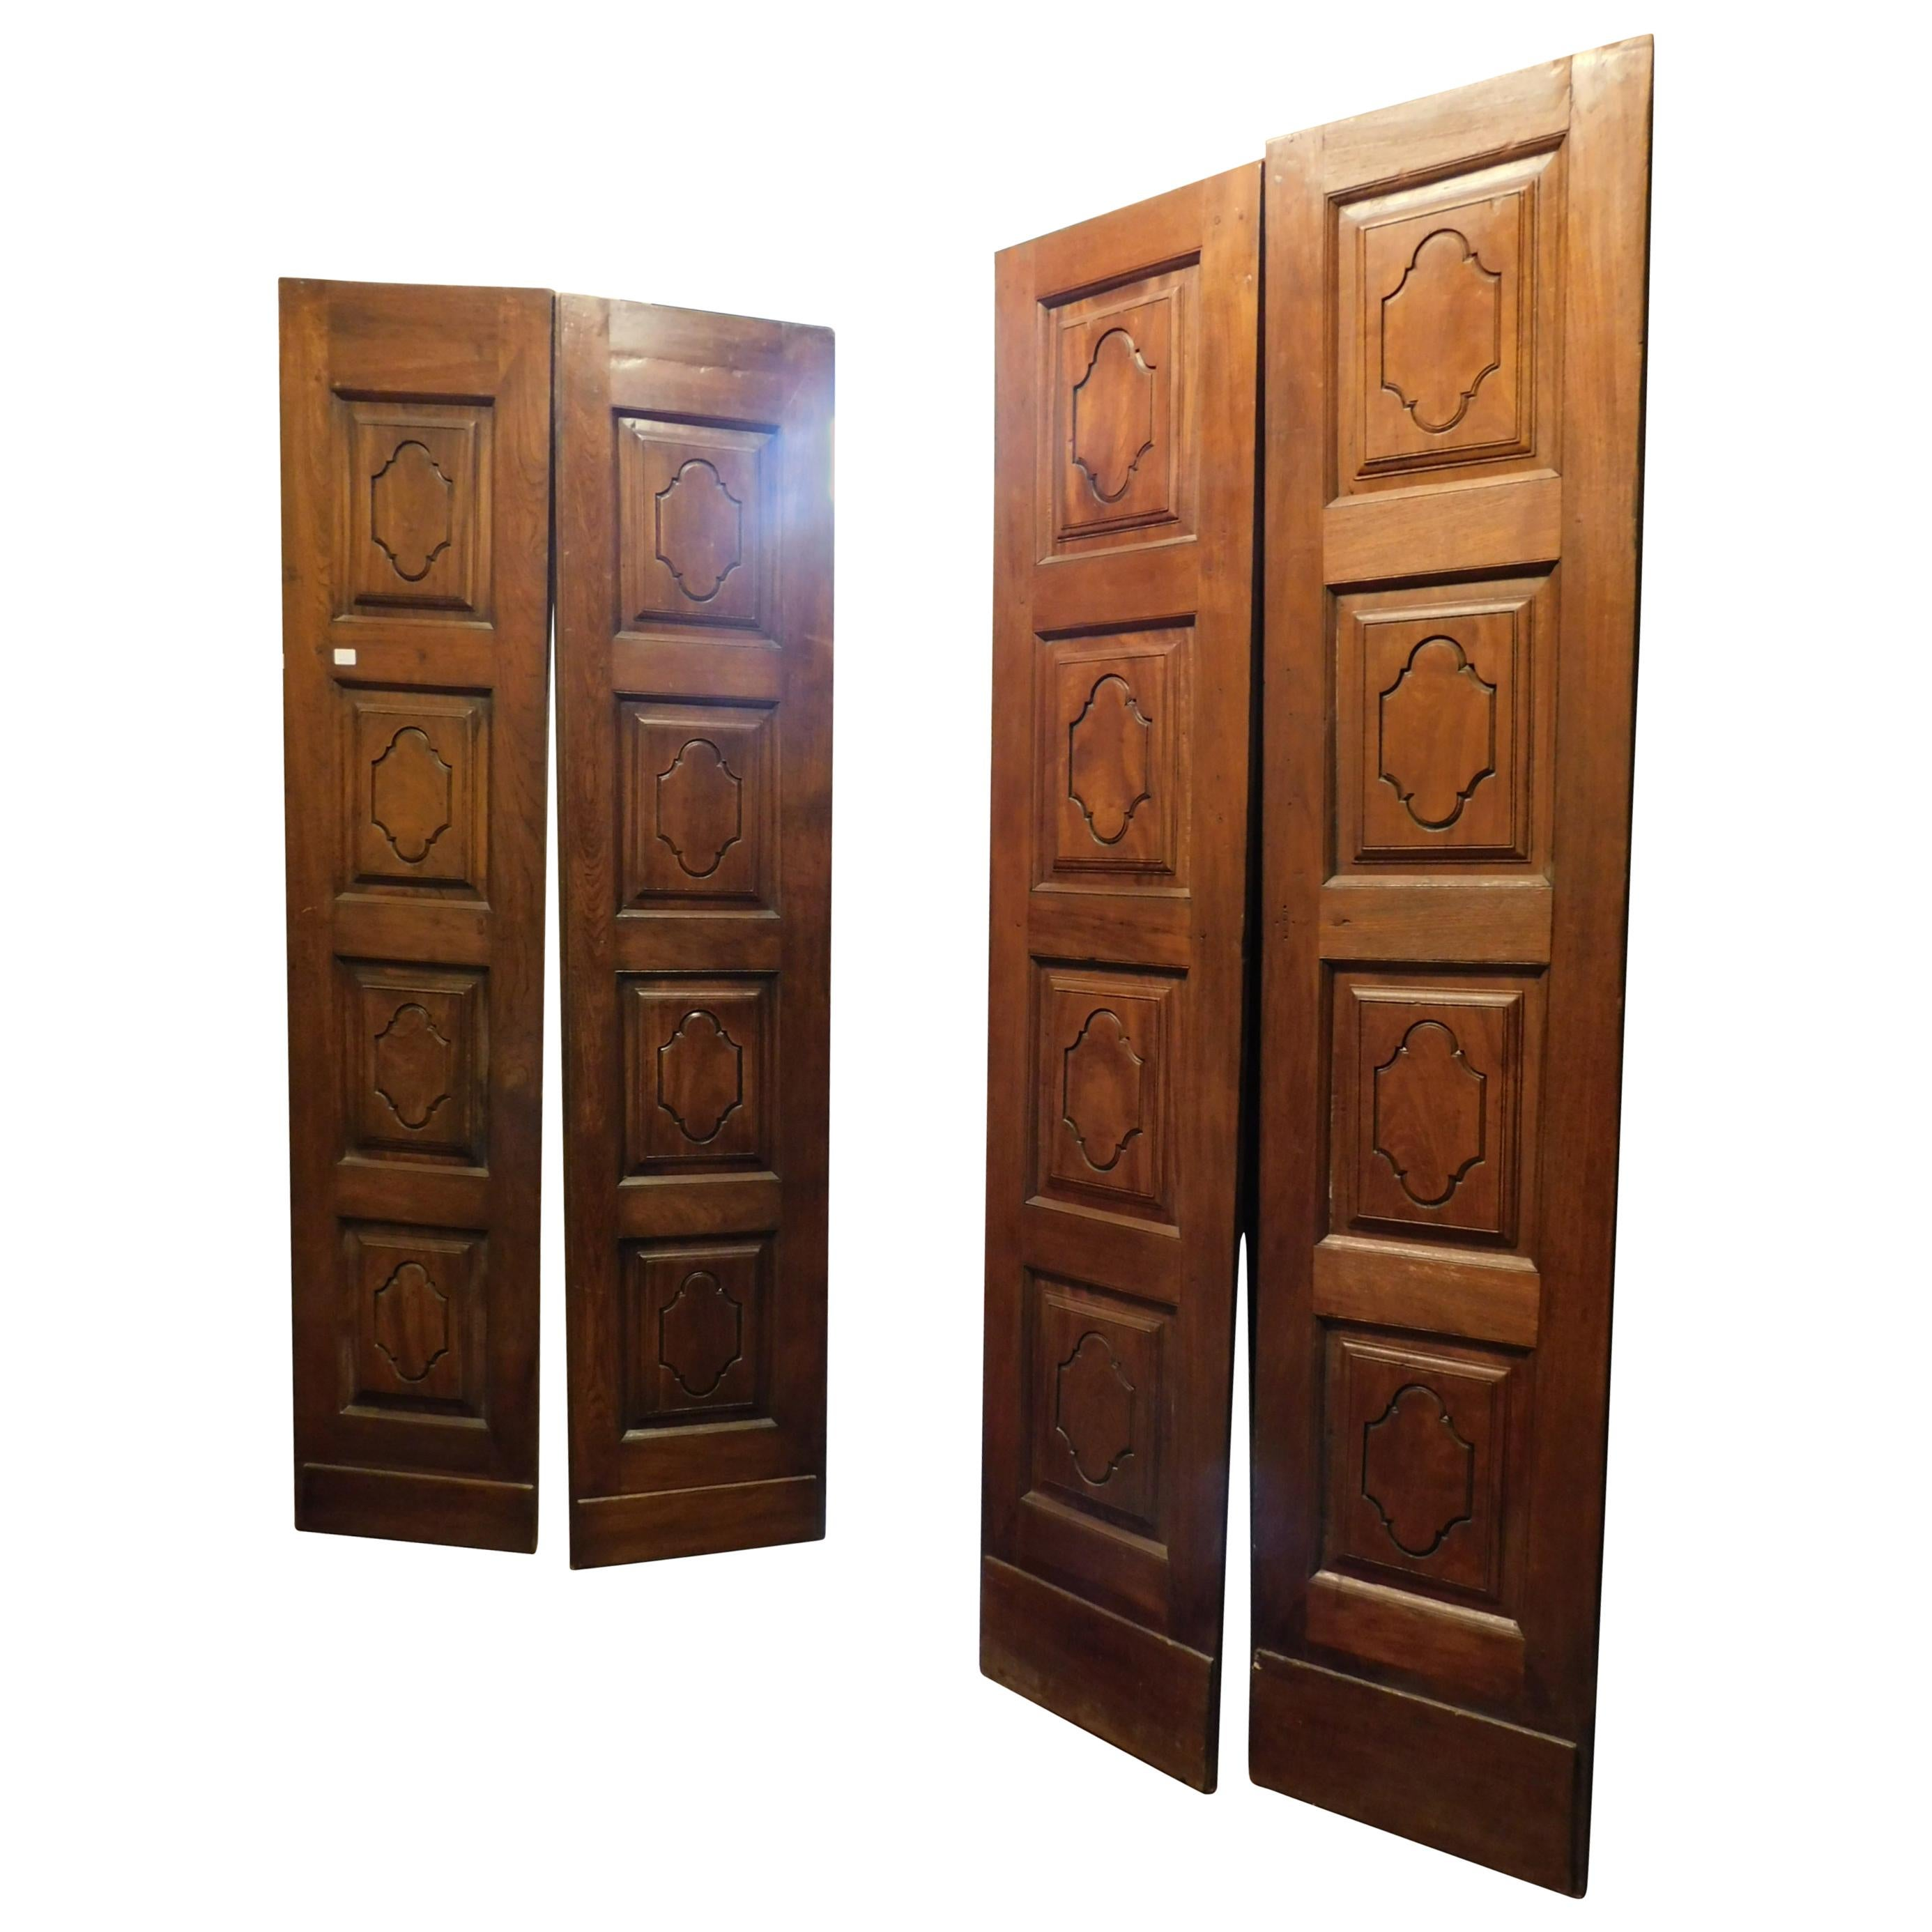 Antique Pair of Double Wing Wood Doors, Carved Front and Behind, 1700, Italy